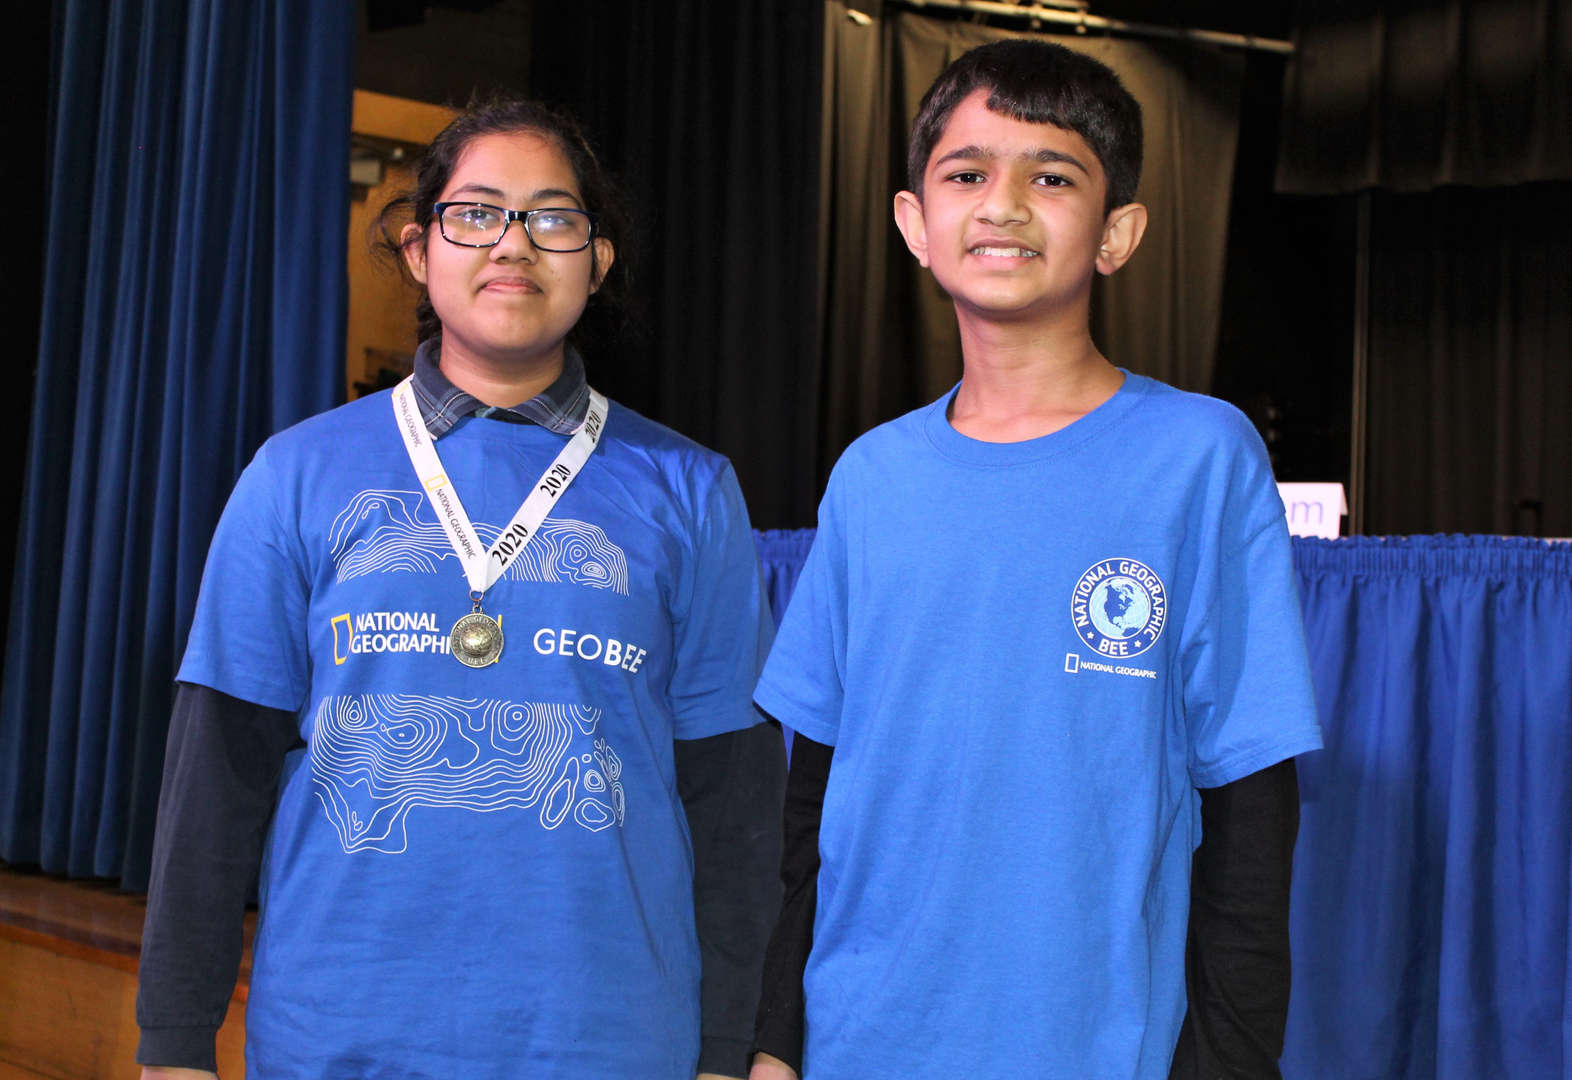 Maryum F. and Zayd R. came in first and second in the school's Geography Bee.